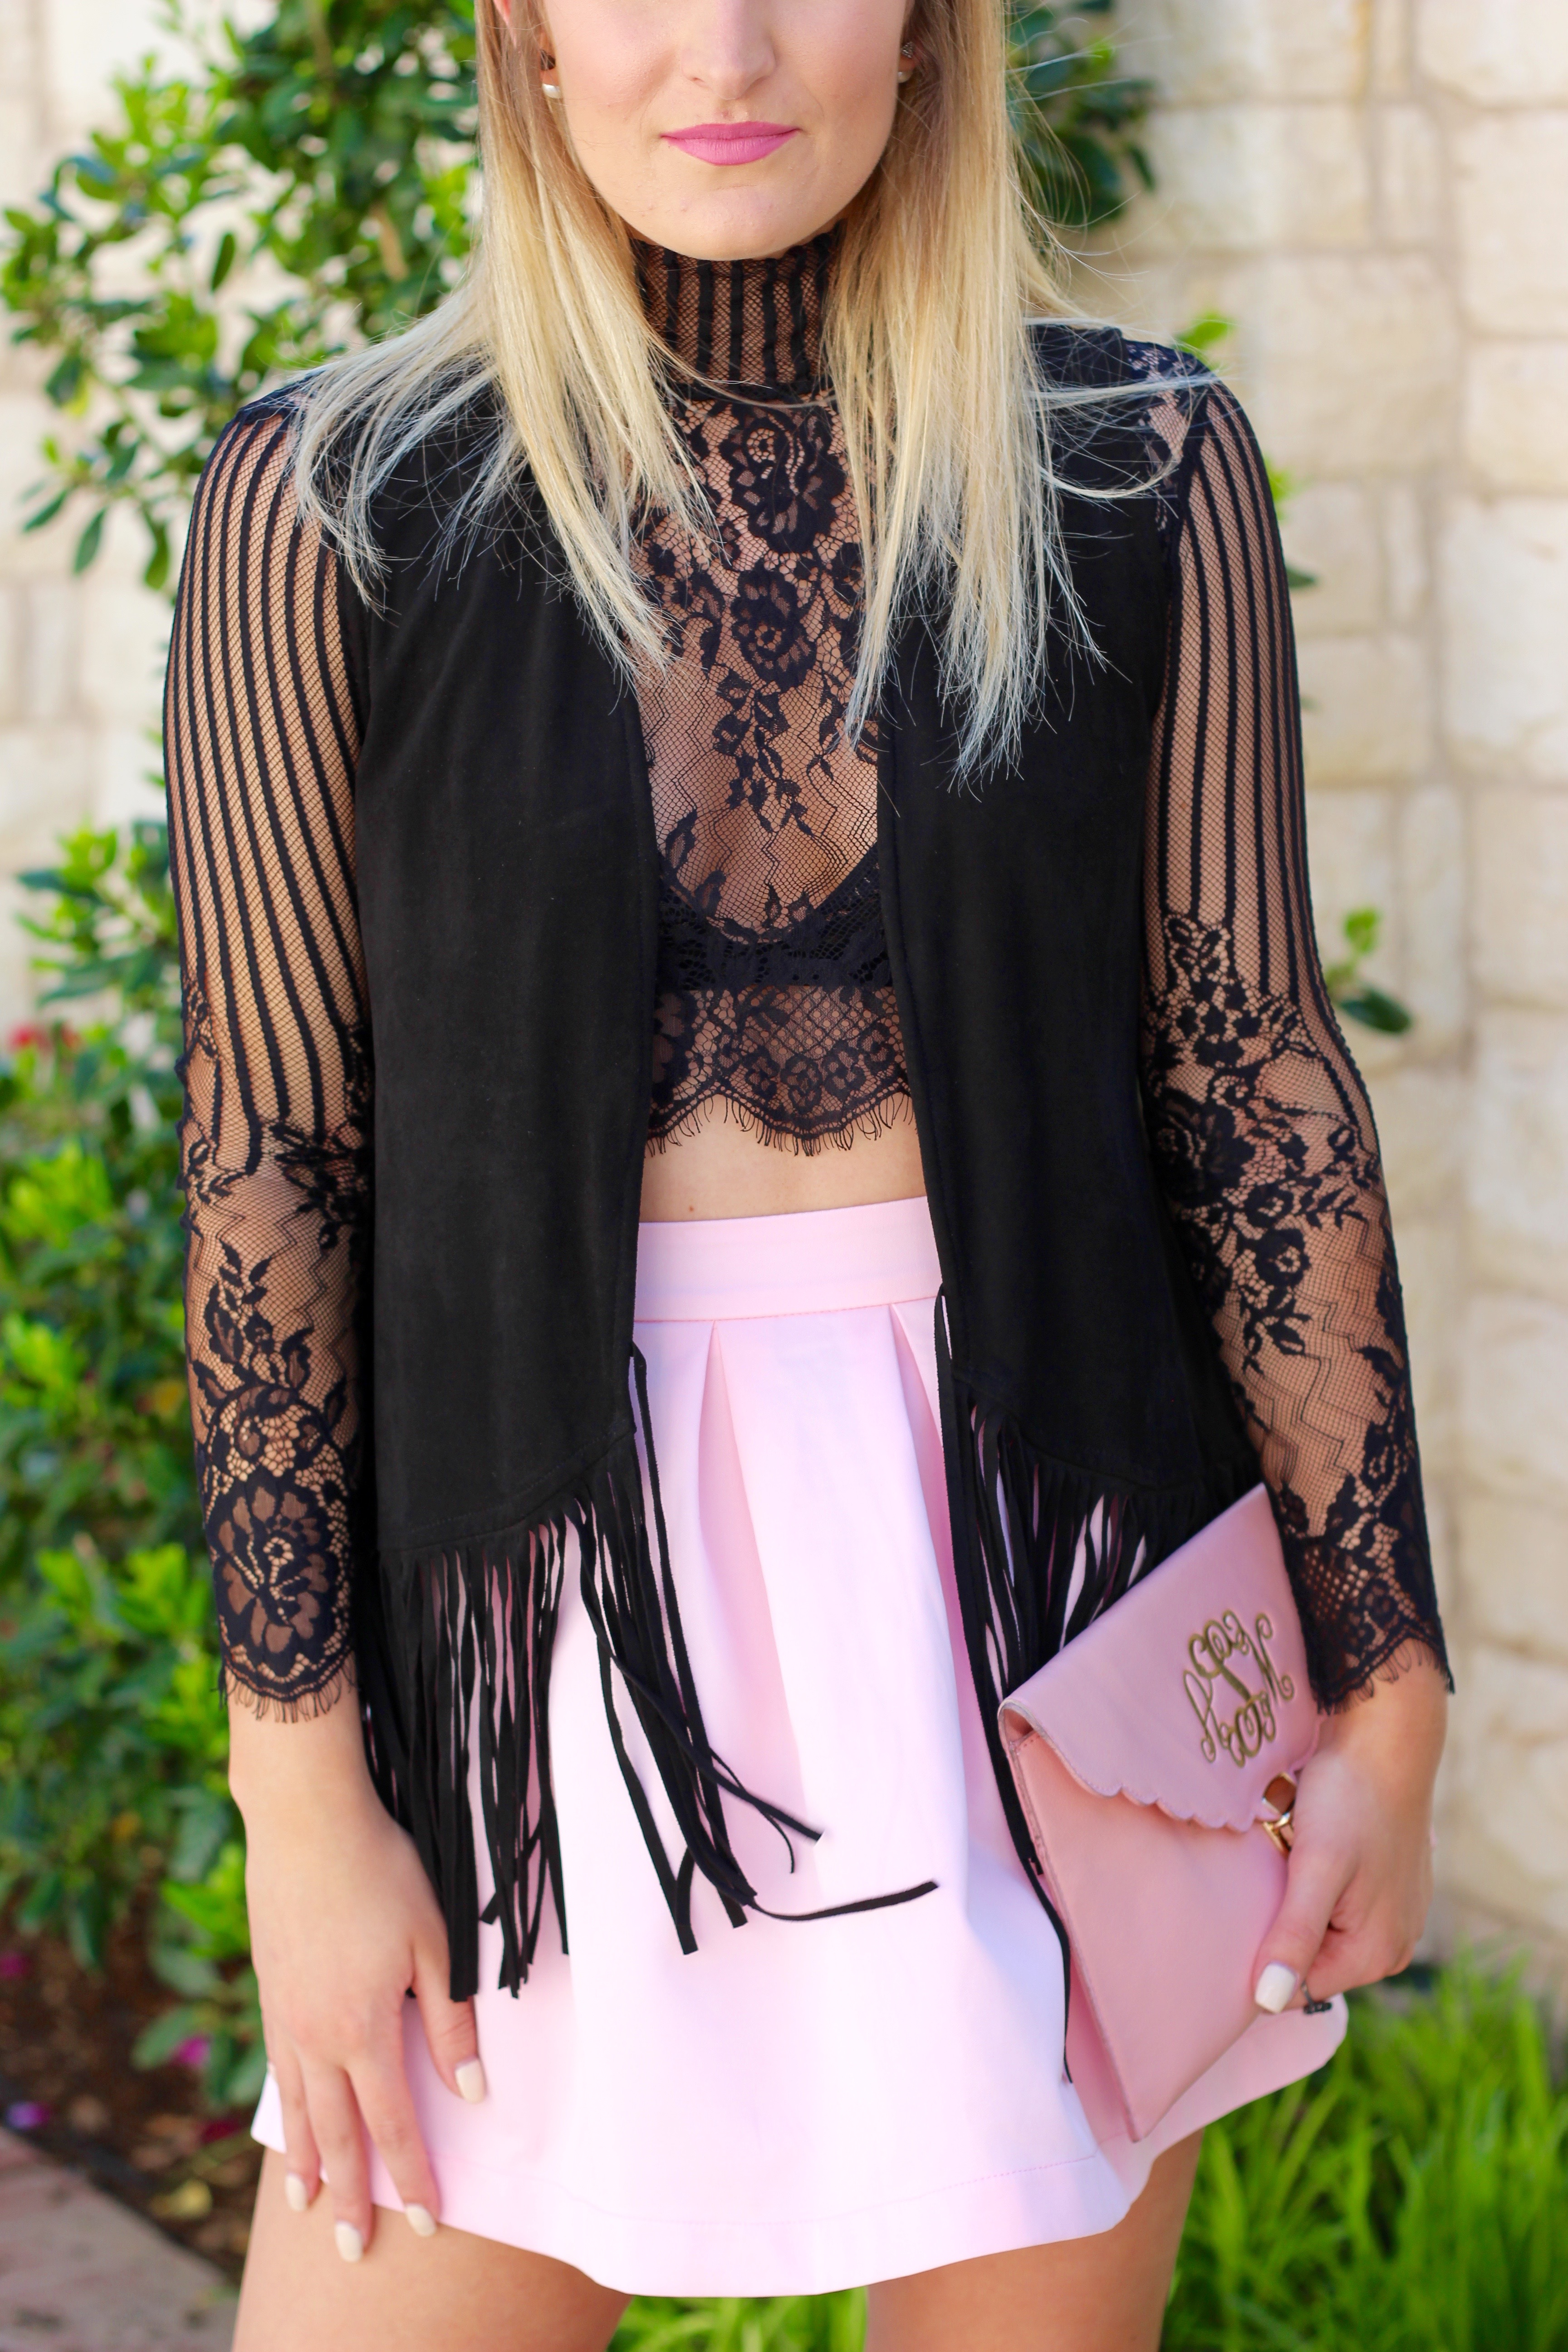 fringe vest with lace top and girly pink skirt